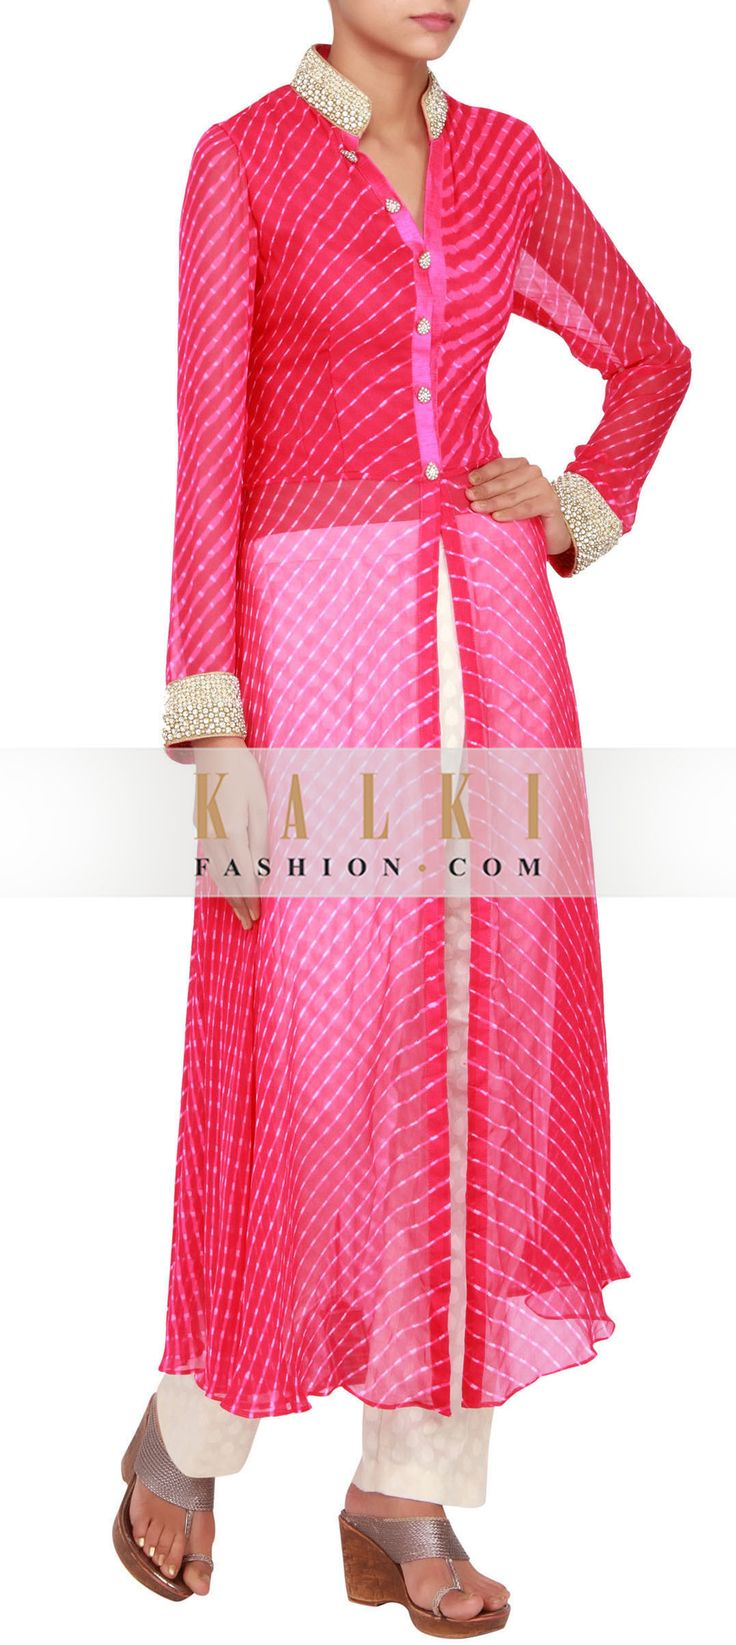 Get this beautiful Salwar-Kameez http://www.kalkifashion.com/fushia-georgette-printed-straight-cut-suit-embellished-in-pearl-and-stone-only-on-kalki.html